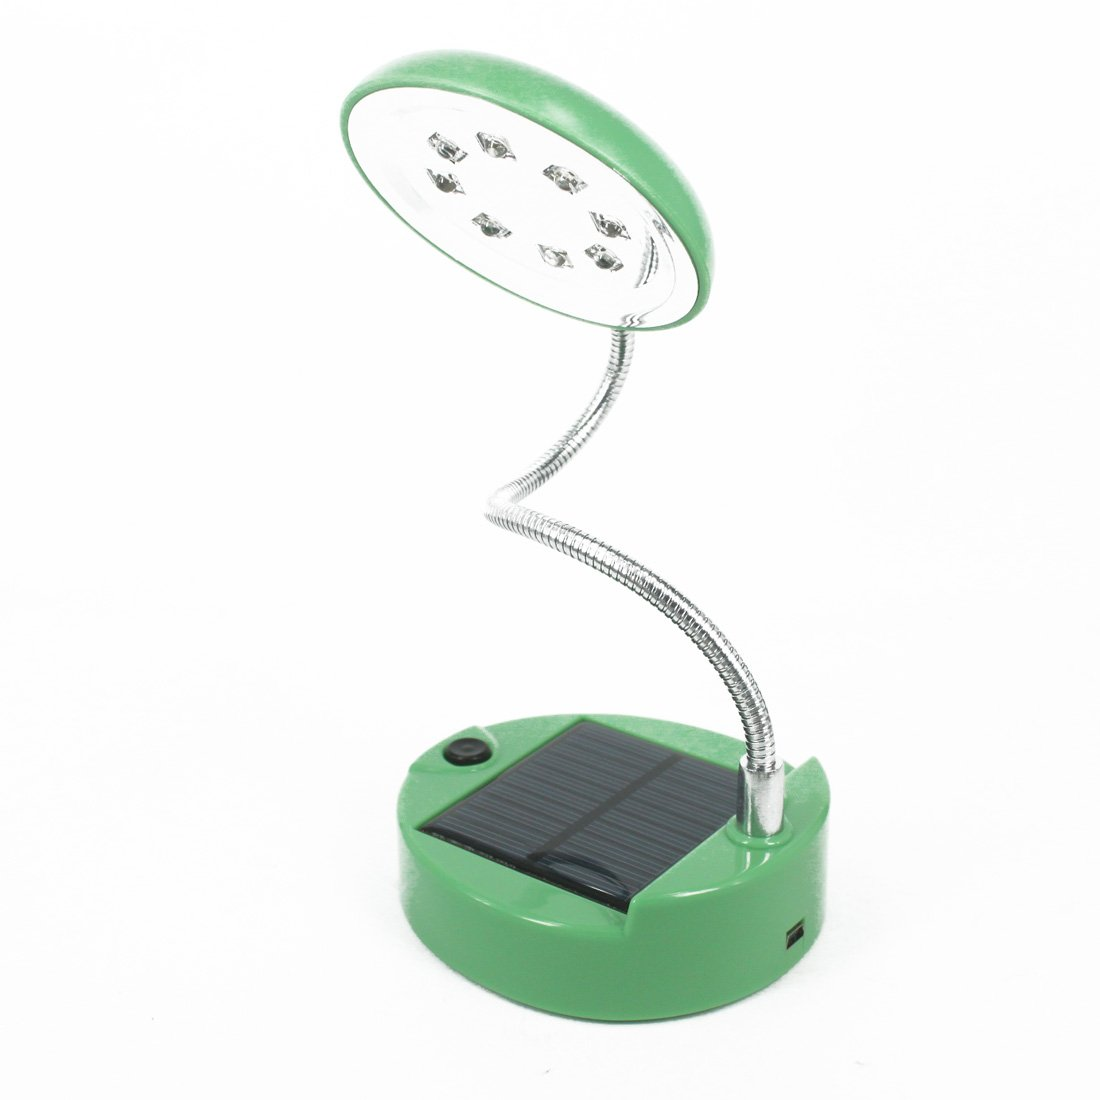 Andux Zone Solar USB Power 8 LED luz de lectura,lámpara de escritorio solar CS-TD01 (verde)